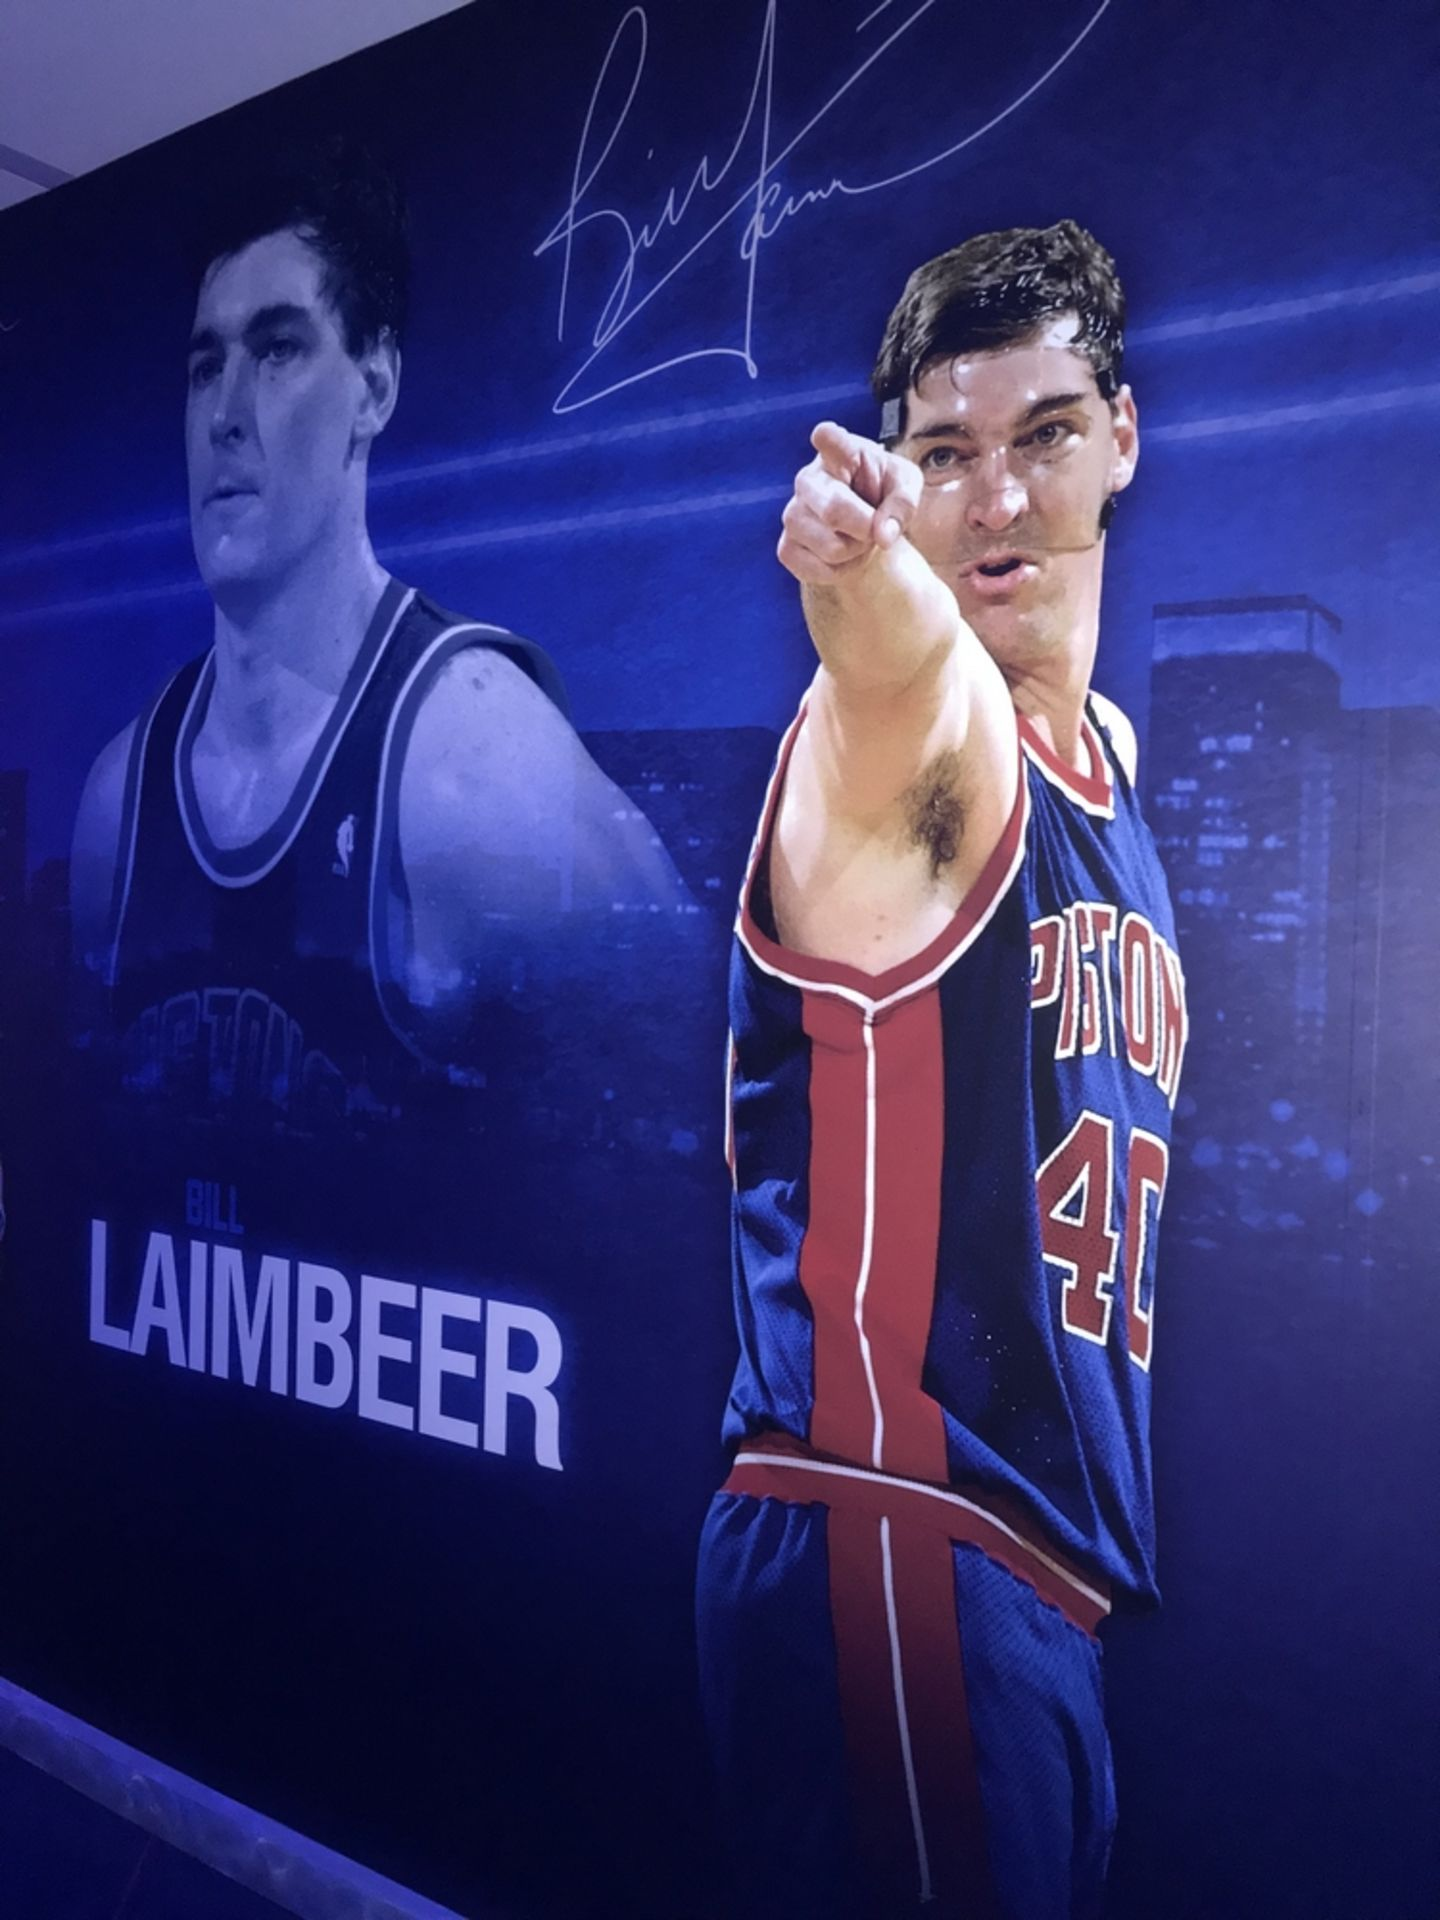 Lot 22 - Bill Laimbeer - Vinyl Wall Mural , Dim. 96 in w x 116 in h , Location: Locker Room ***Note from